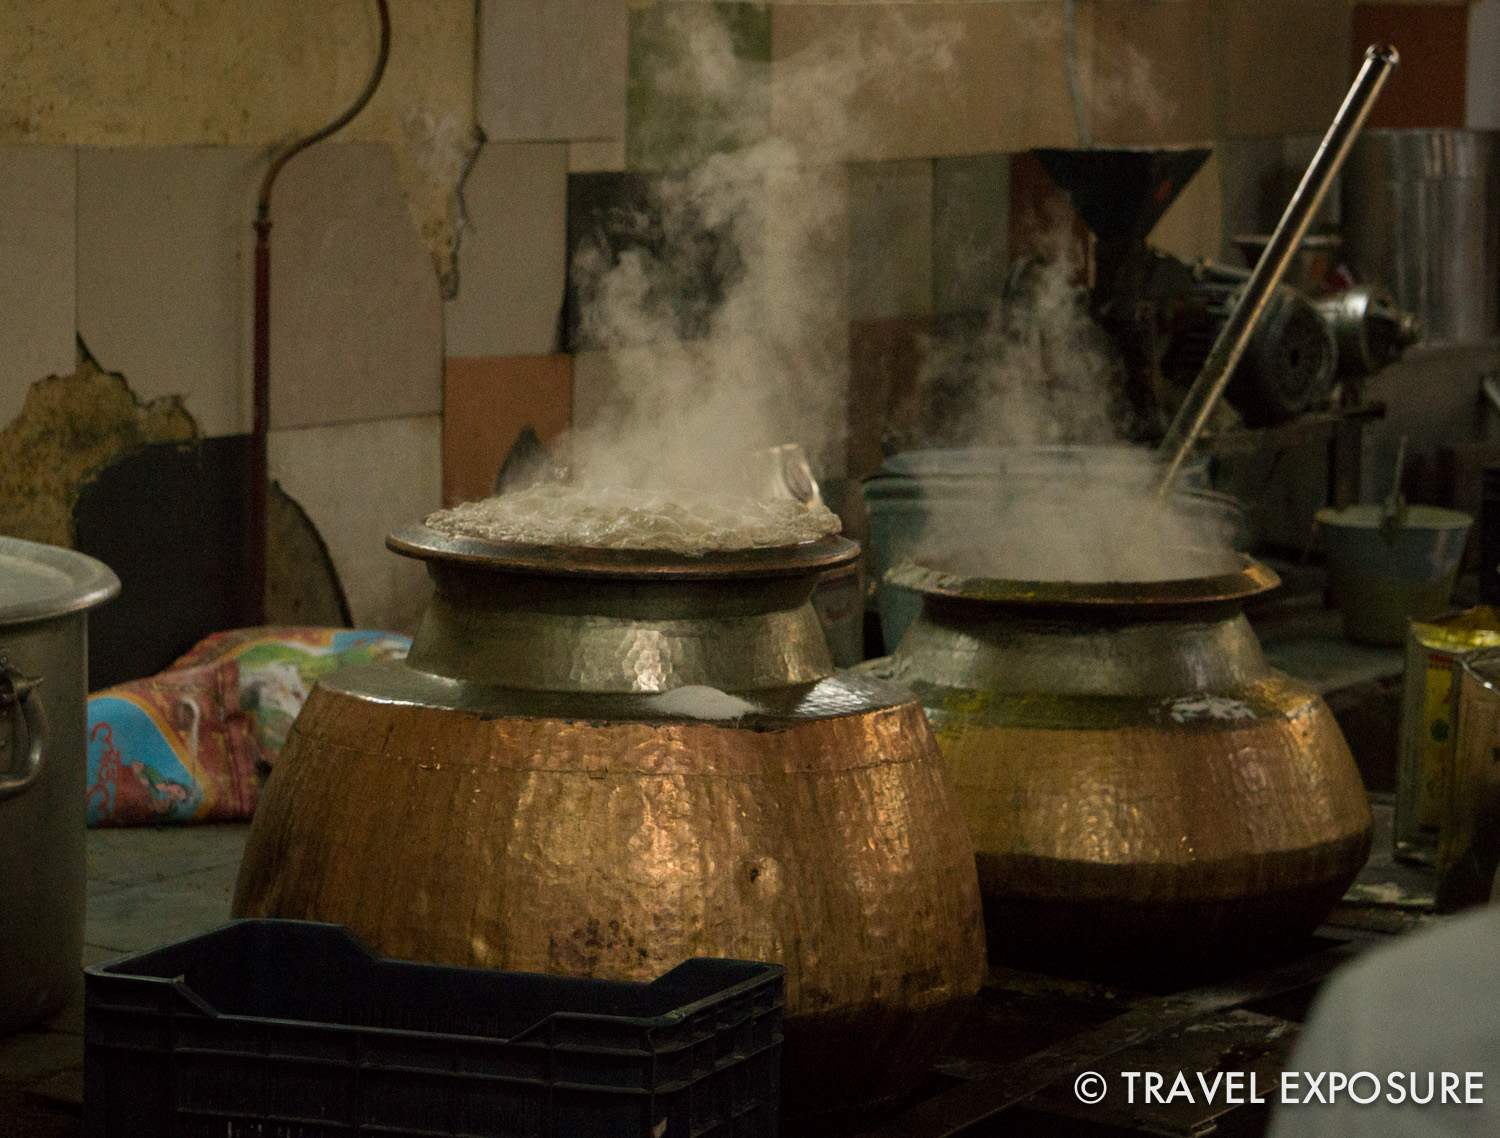 Inside the community kitchen at the   Sikh temple Gurdwara SisGanj in Delhi